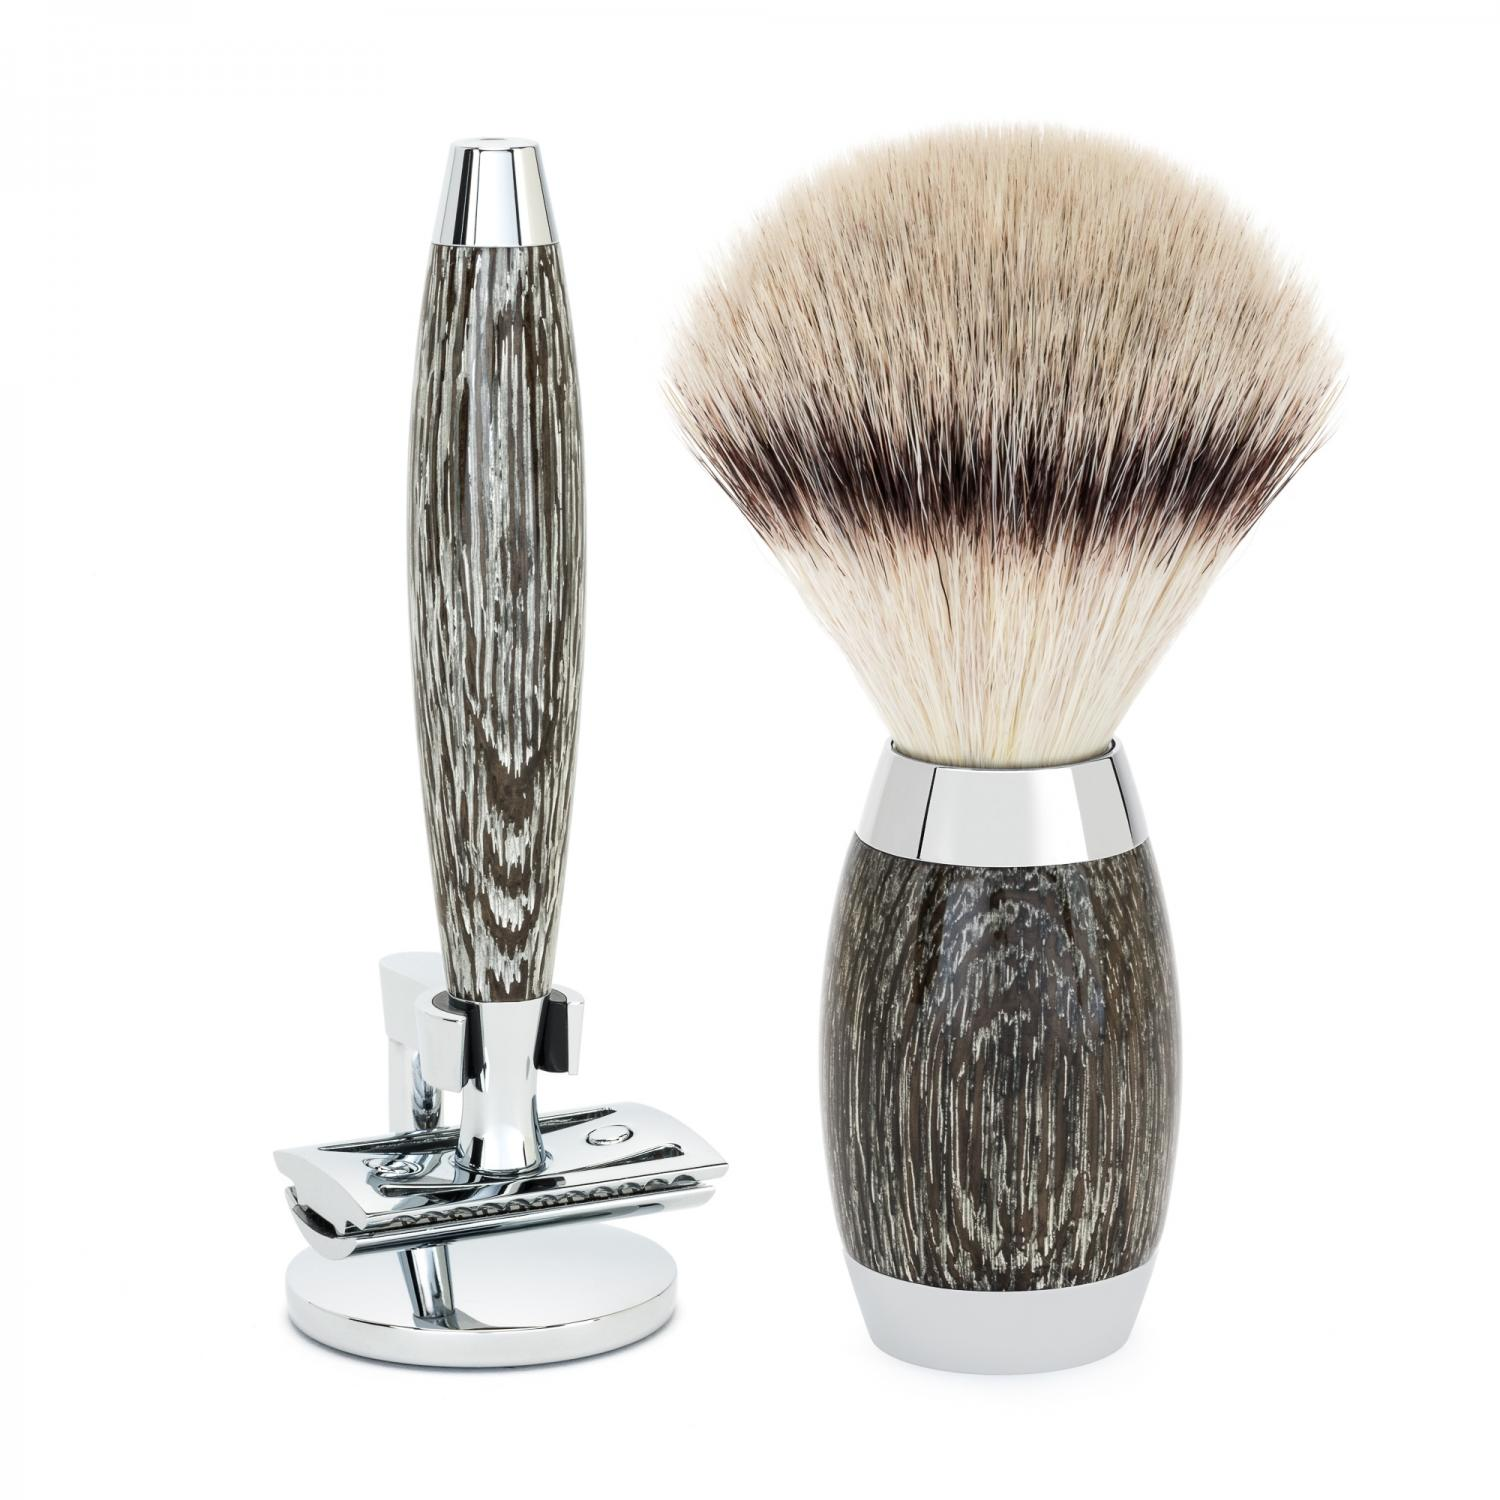 MUHLE EDITION Ancient Oak and Silver Handle Vegan Shaving Set